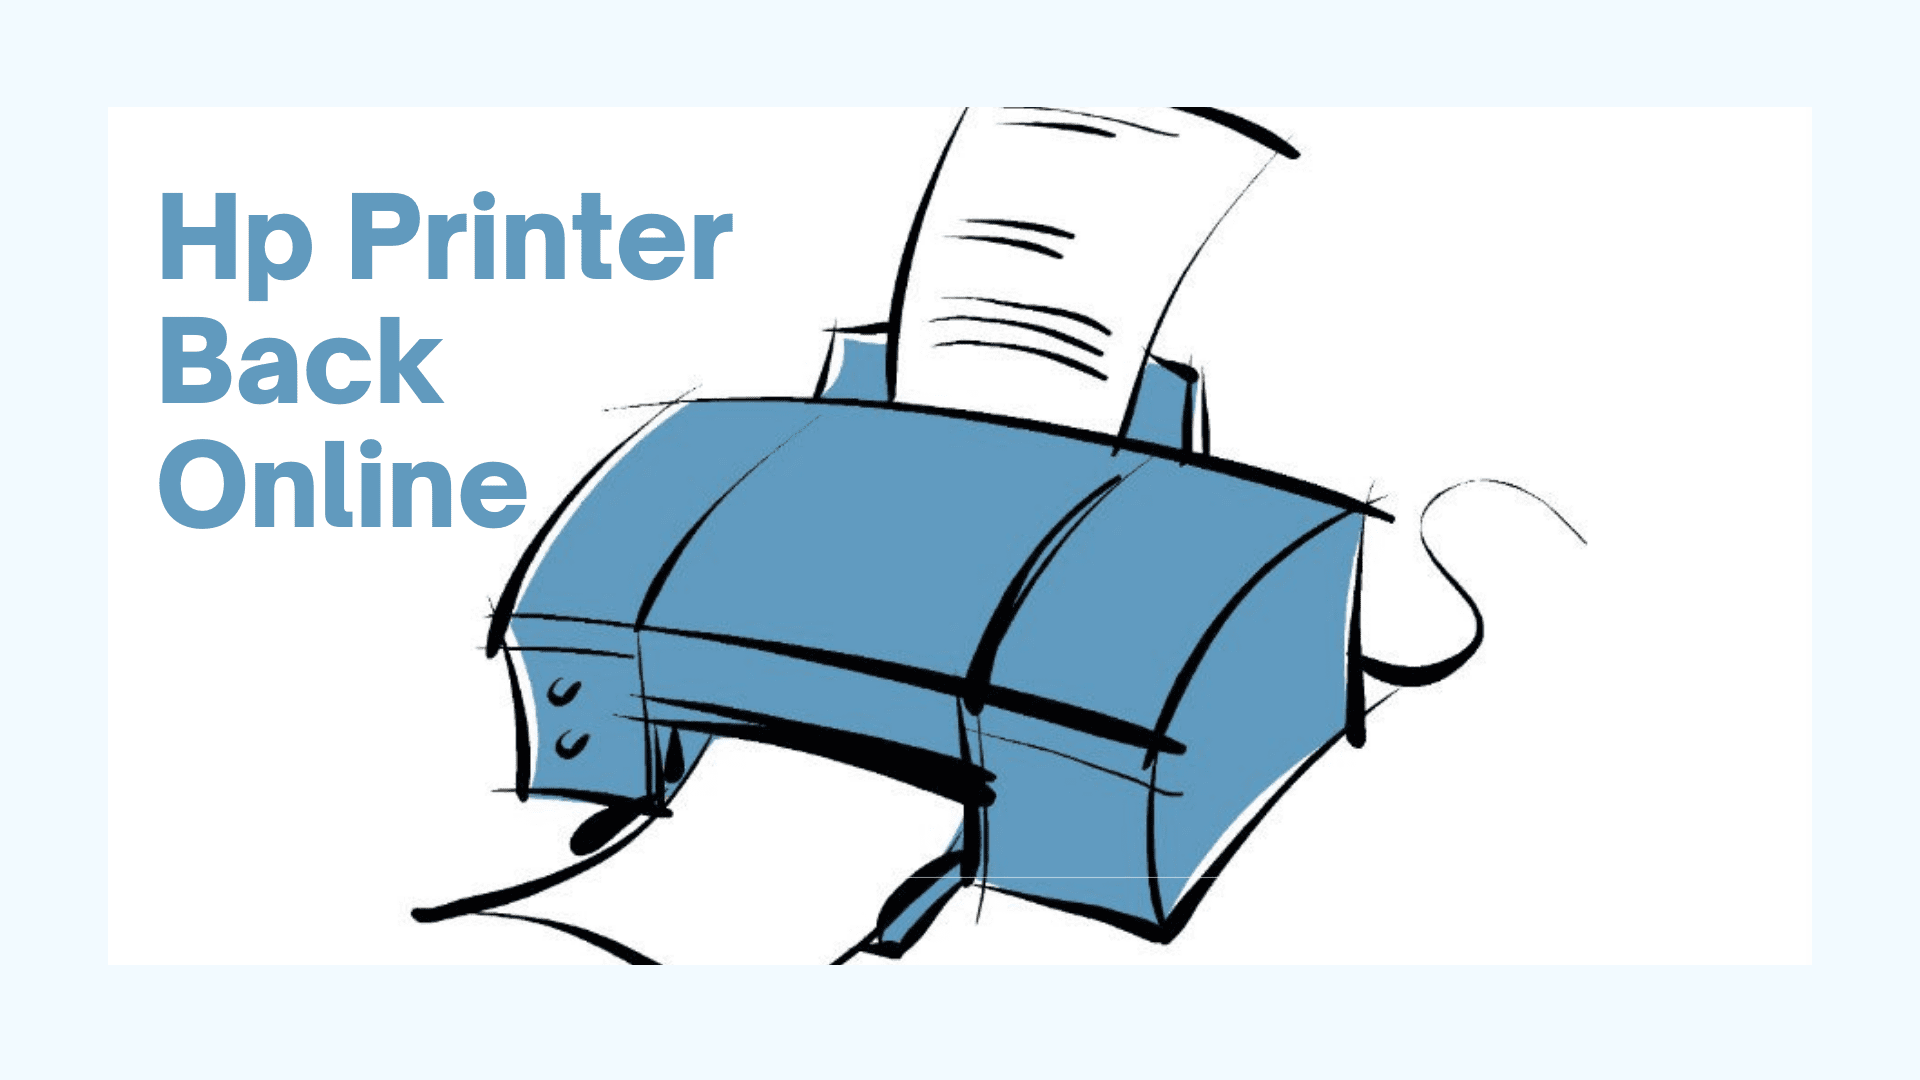 How to get the hp printer back online?